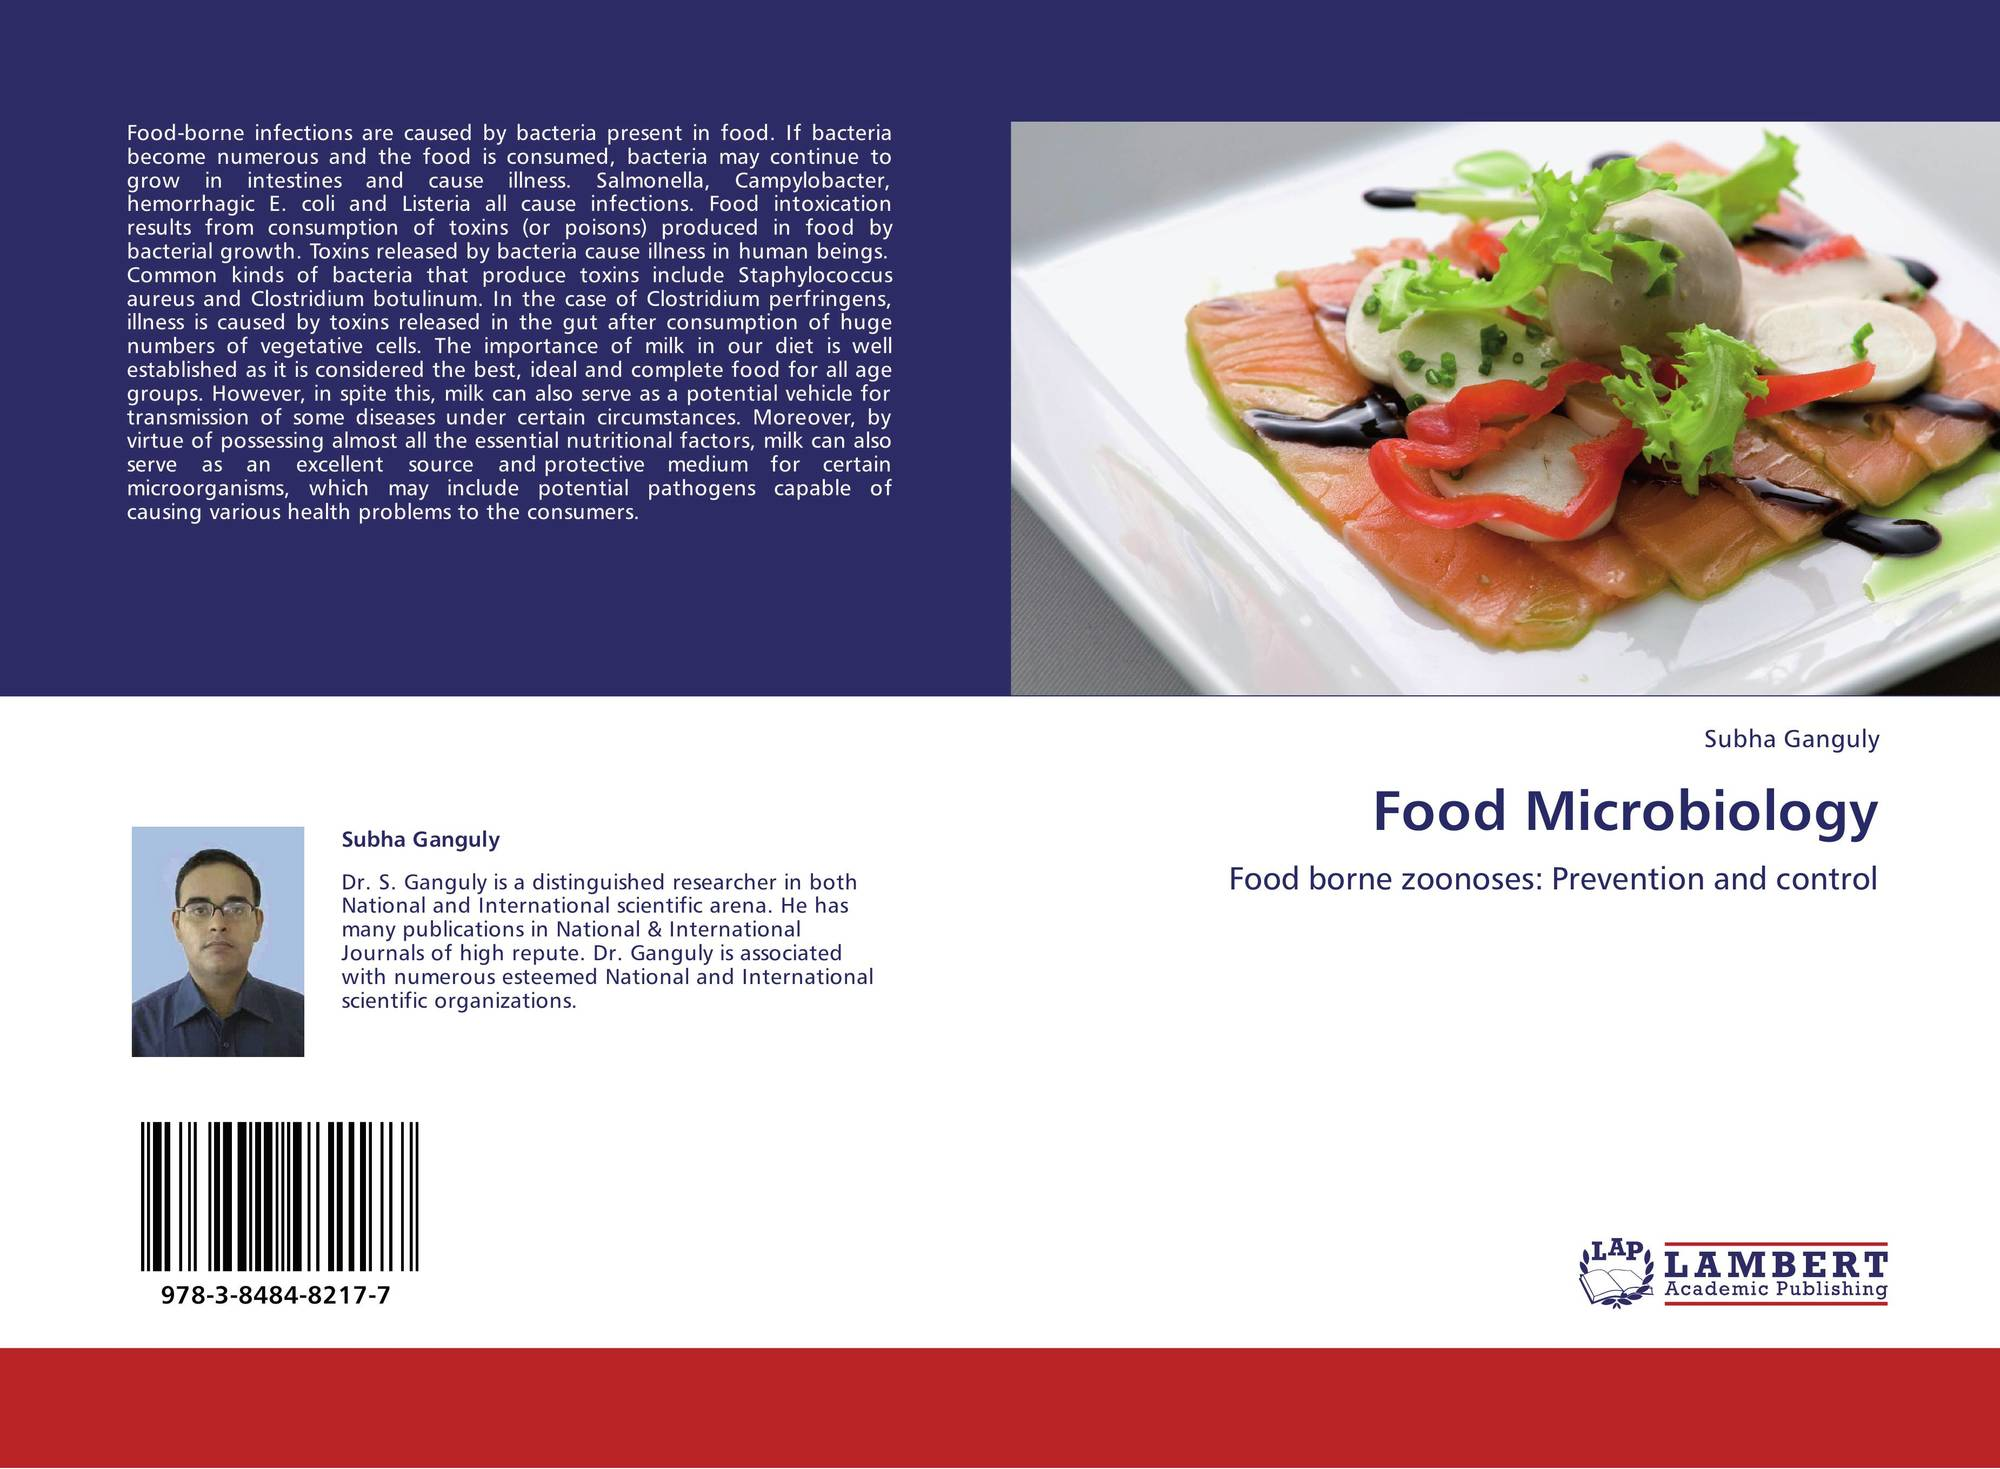 food microbiology Texas a&m university - academic analyses and information on horticultural crops ranging from fruits and nuts to ornamentals, viticulture and wine.